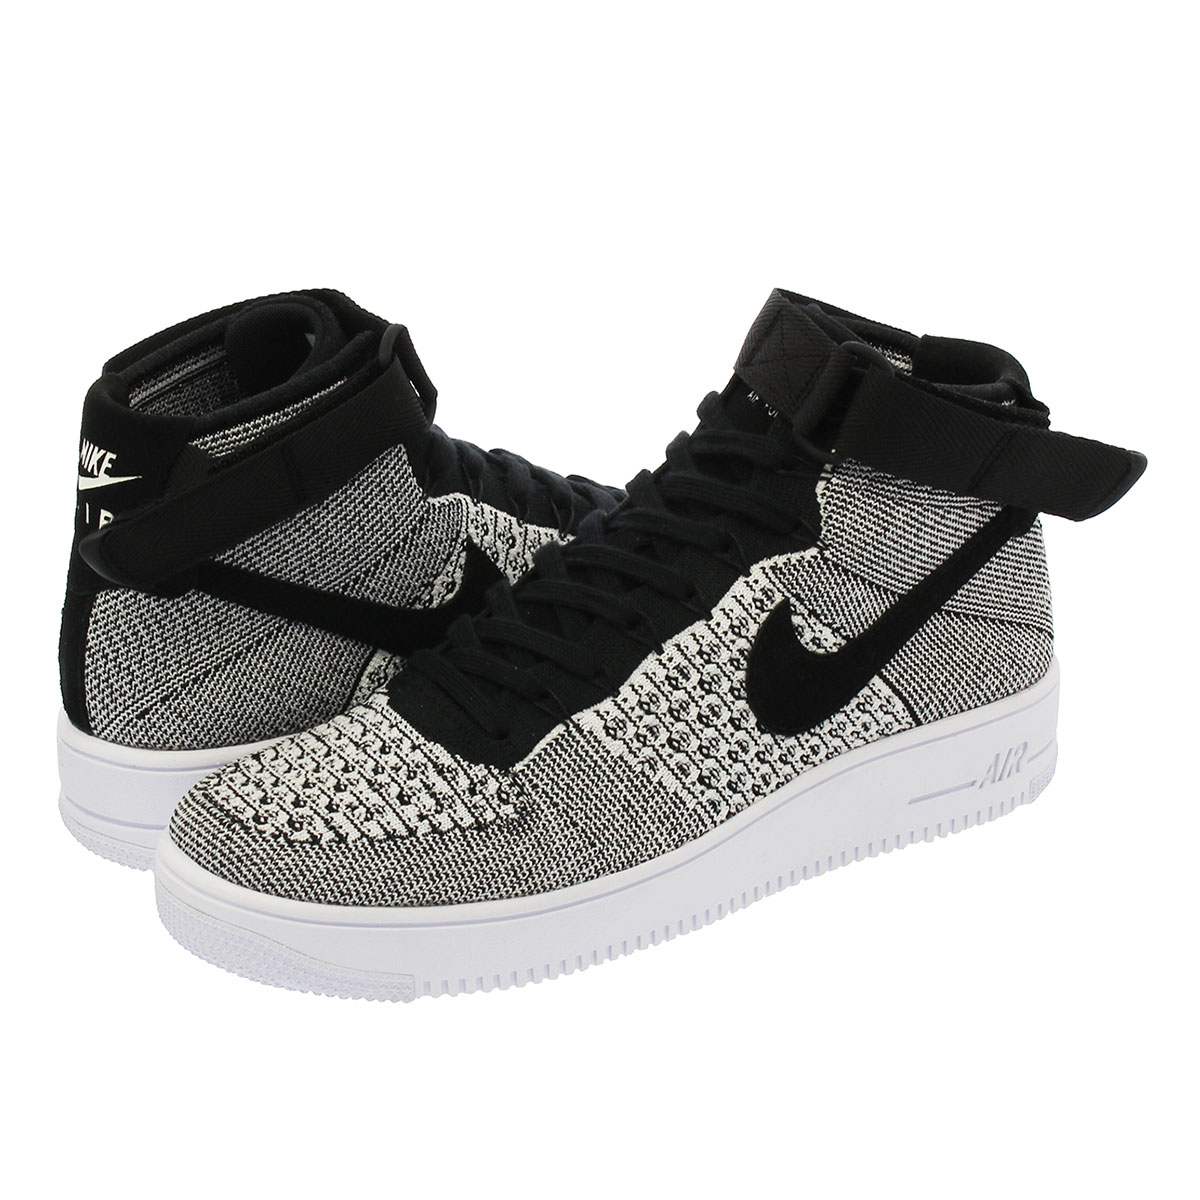 NIKE AIR FORCE 1 ULTRA FLYKNIT MID Nike air force 1 ultra fly knit mid BLACKBLACKWHITE